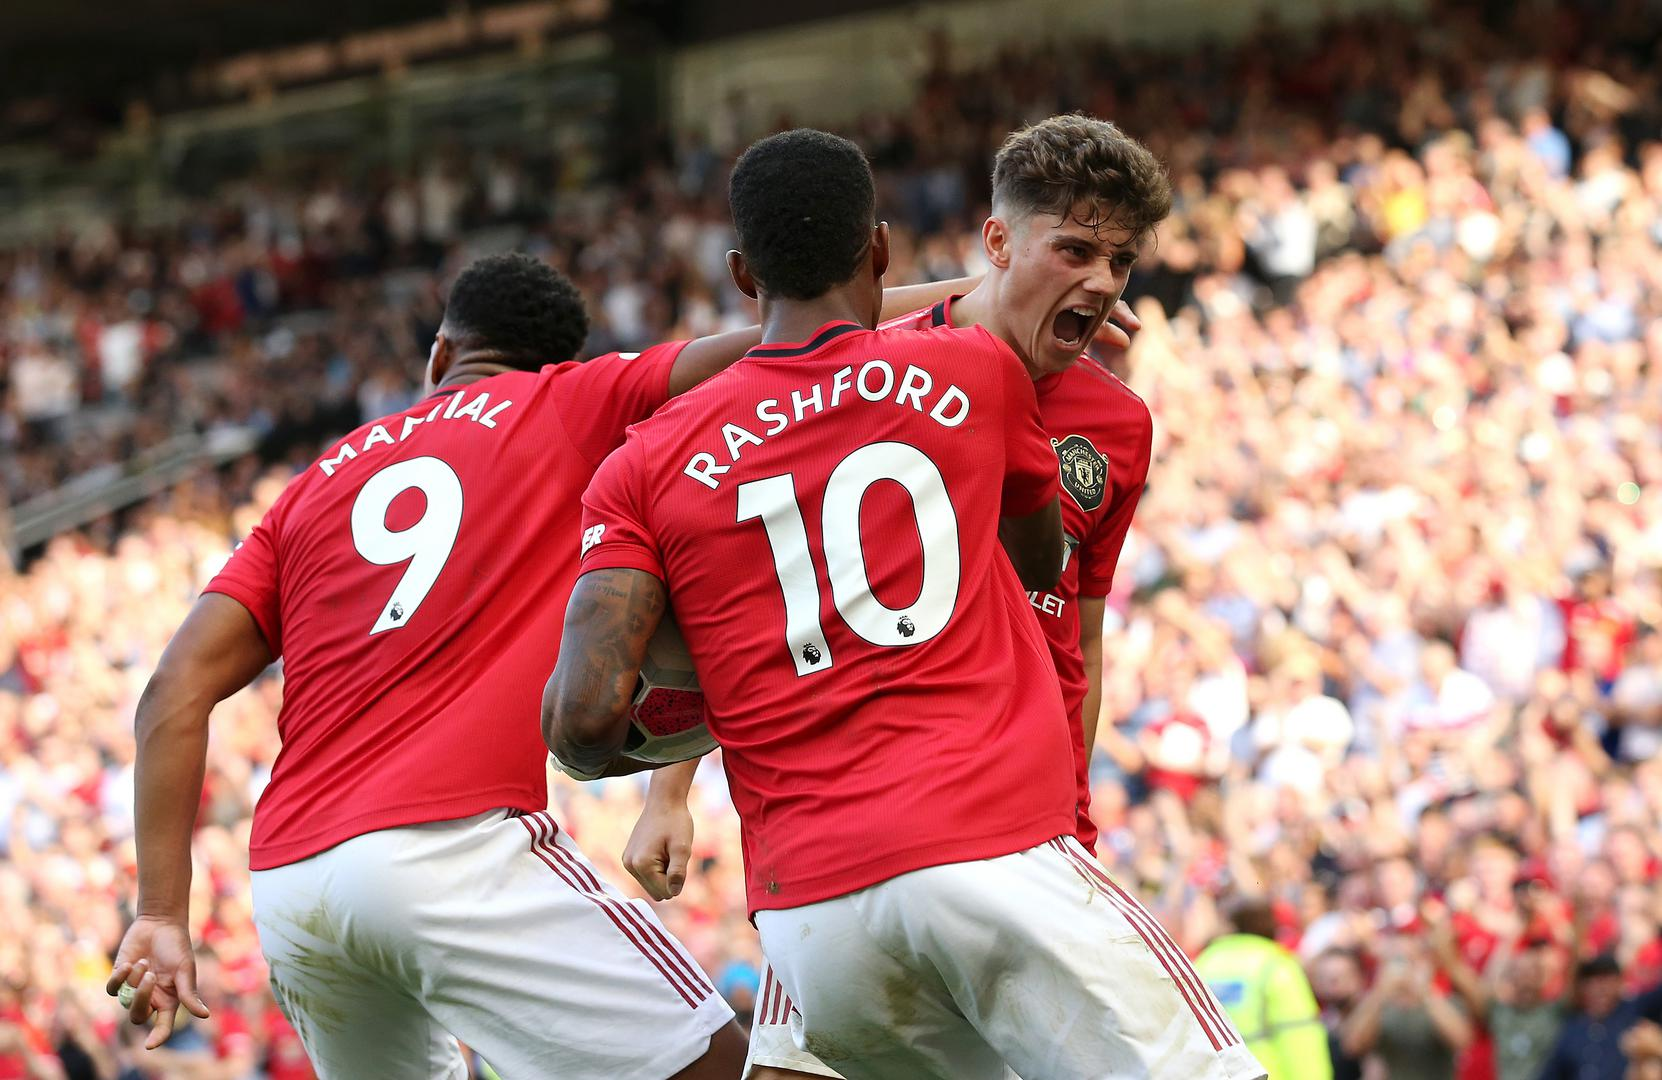 United celebrate Daniel James's goal against Leicester.